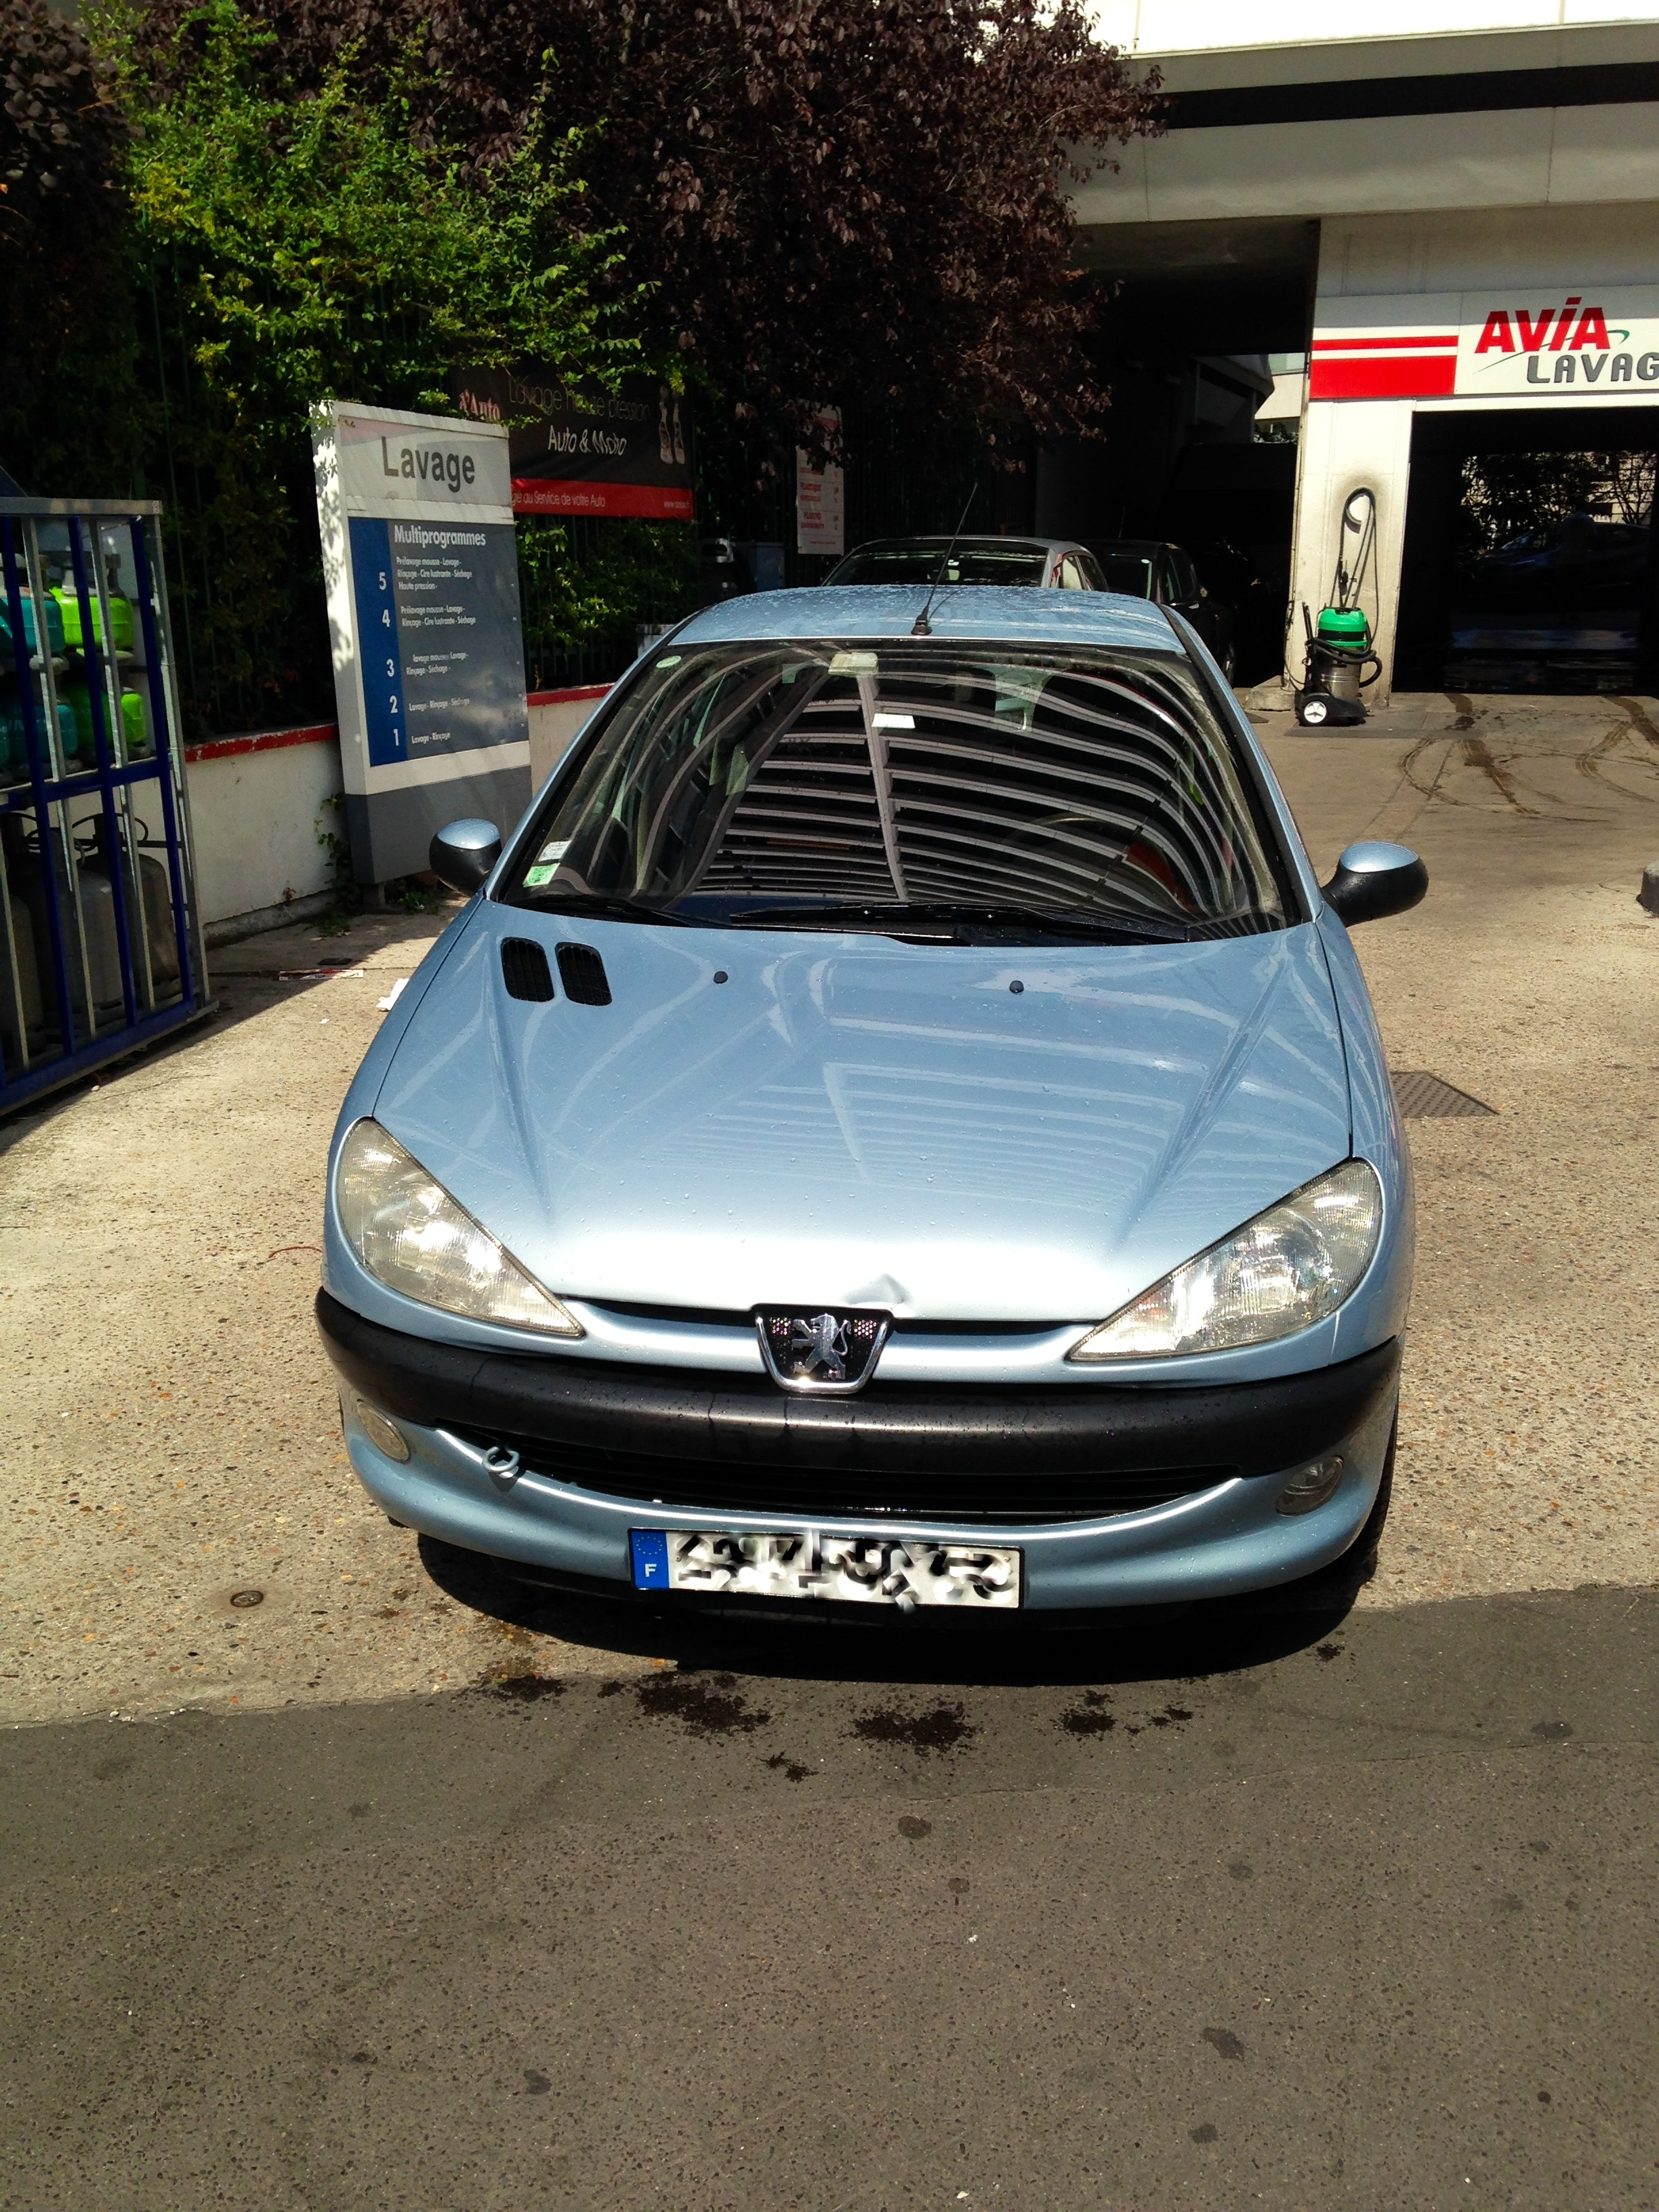 PEUGEOT 206 , 2002, Essence, automatique